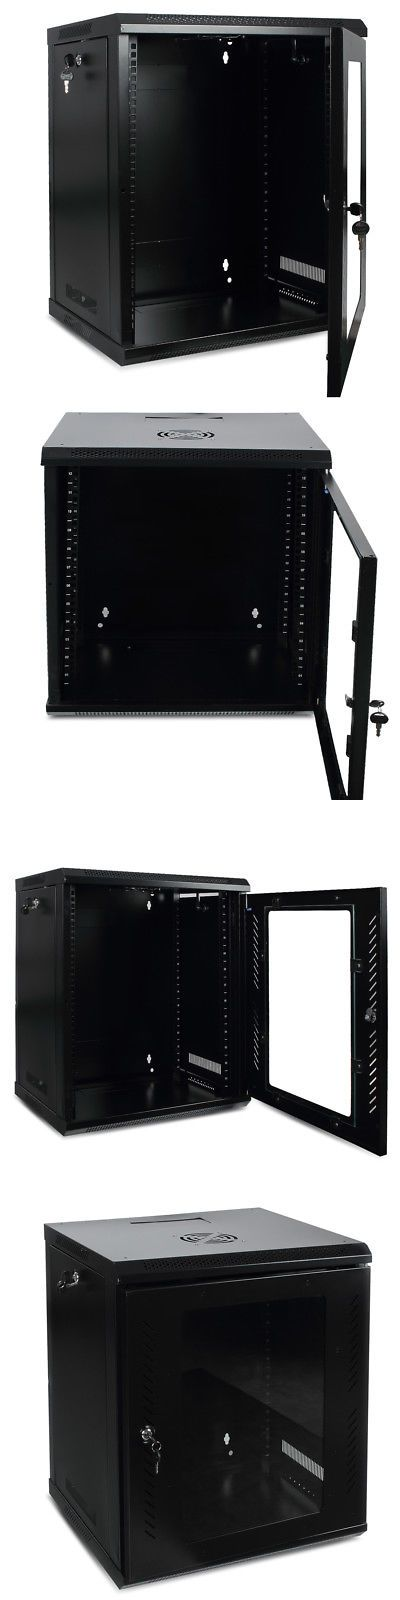 Racks Chassis And Patch Panels 51197 12u Wall Mount Network Equipment Server Data Cabinet Rack Glass Door Black Buy Patch Panels Glass Door Data Cabinet